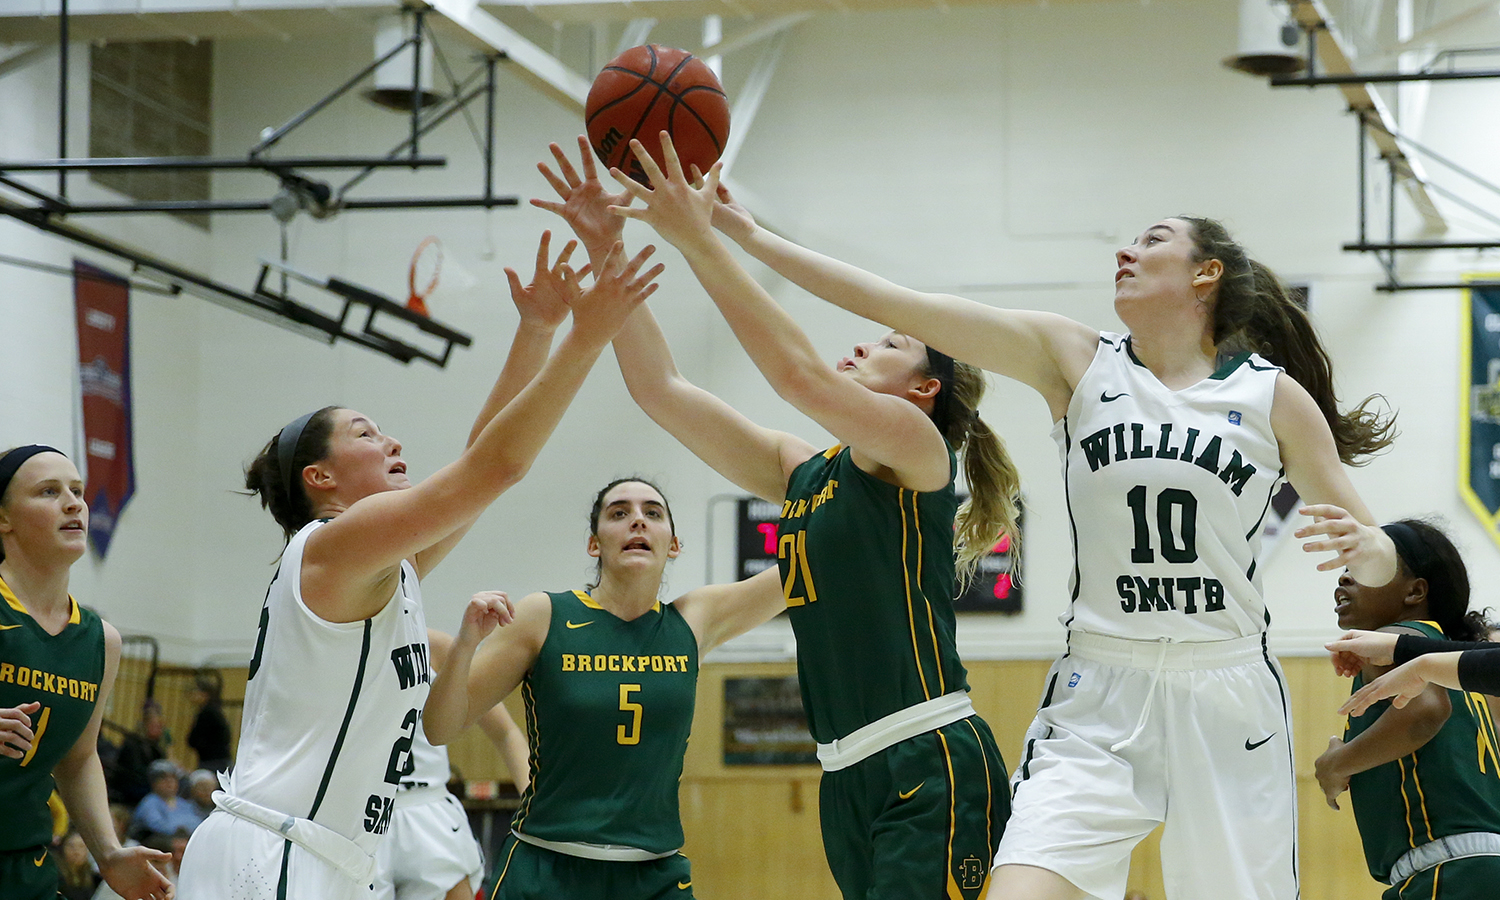 Emma Gallagher â19 and Amy Dooley â22 reach for the ball during William Smith âs 83-70 win over the College at Brockport.